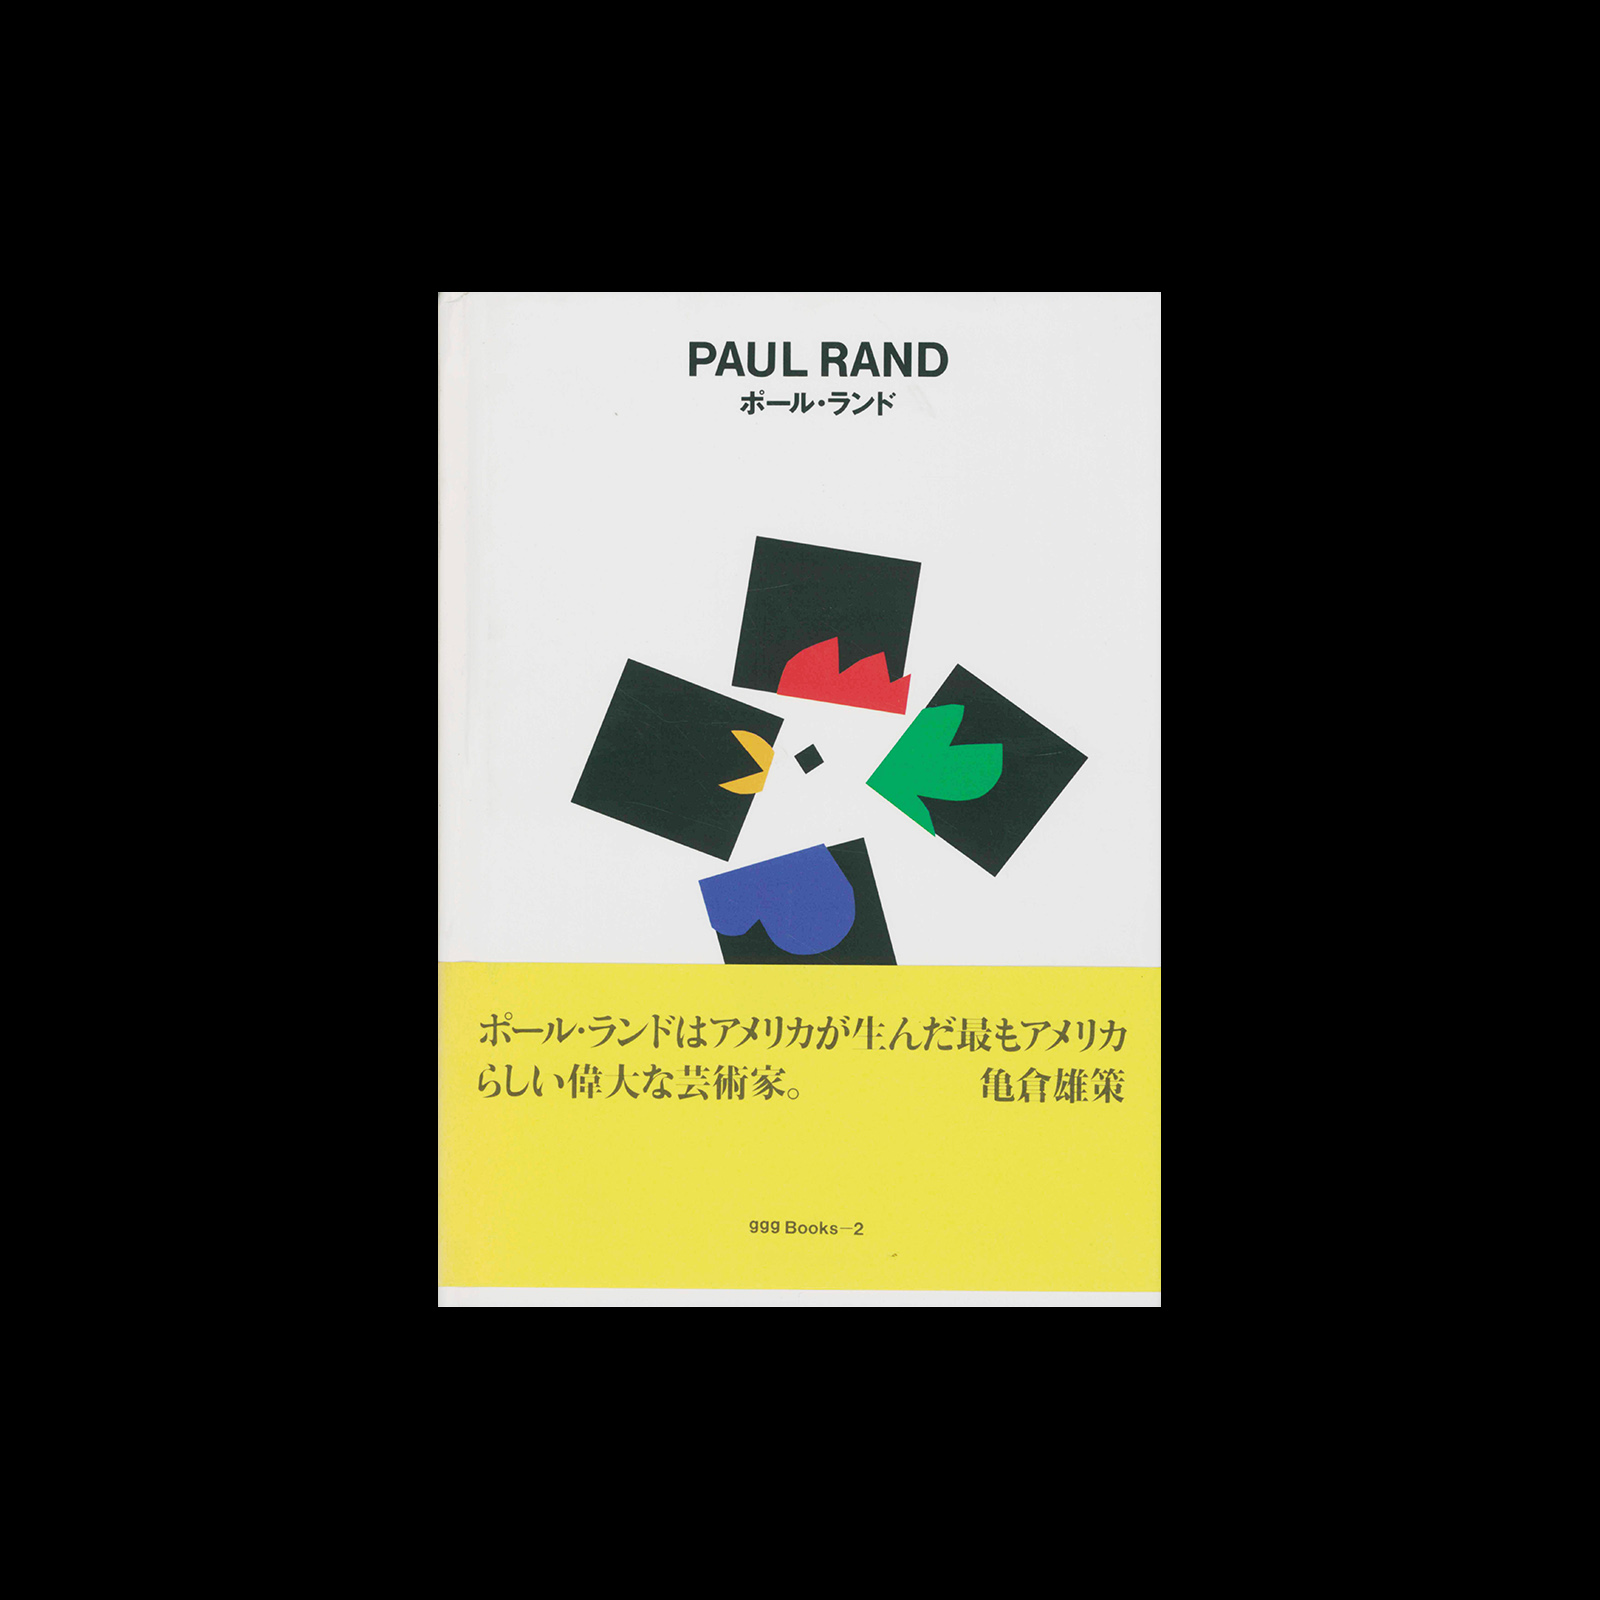 Ginza Graphic Gallery 02, Paul Rand